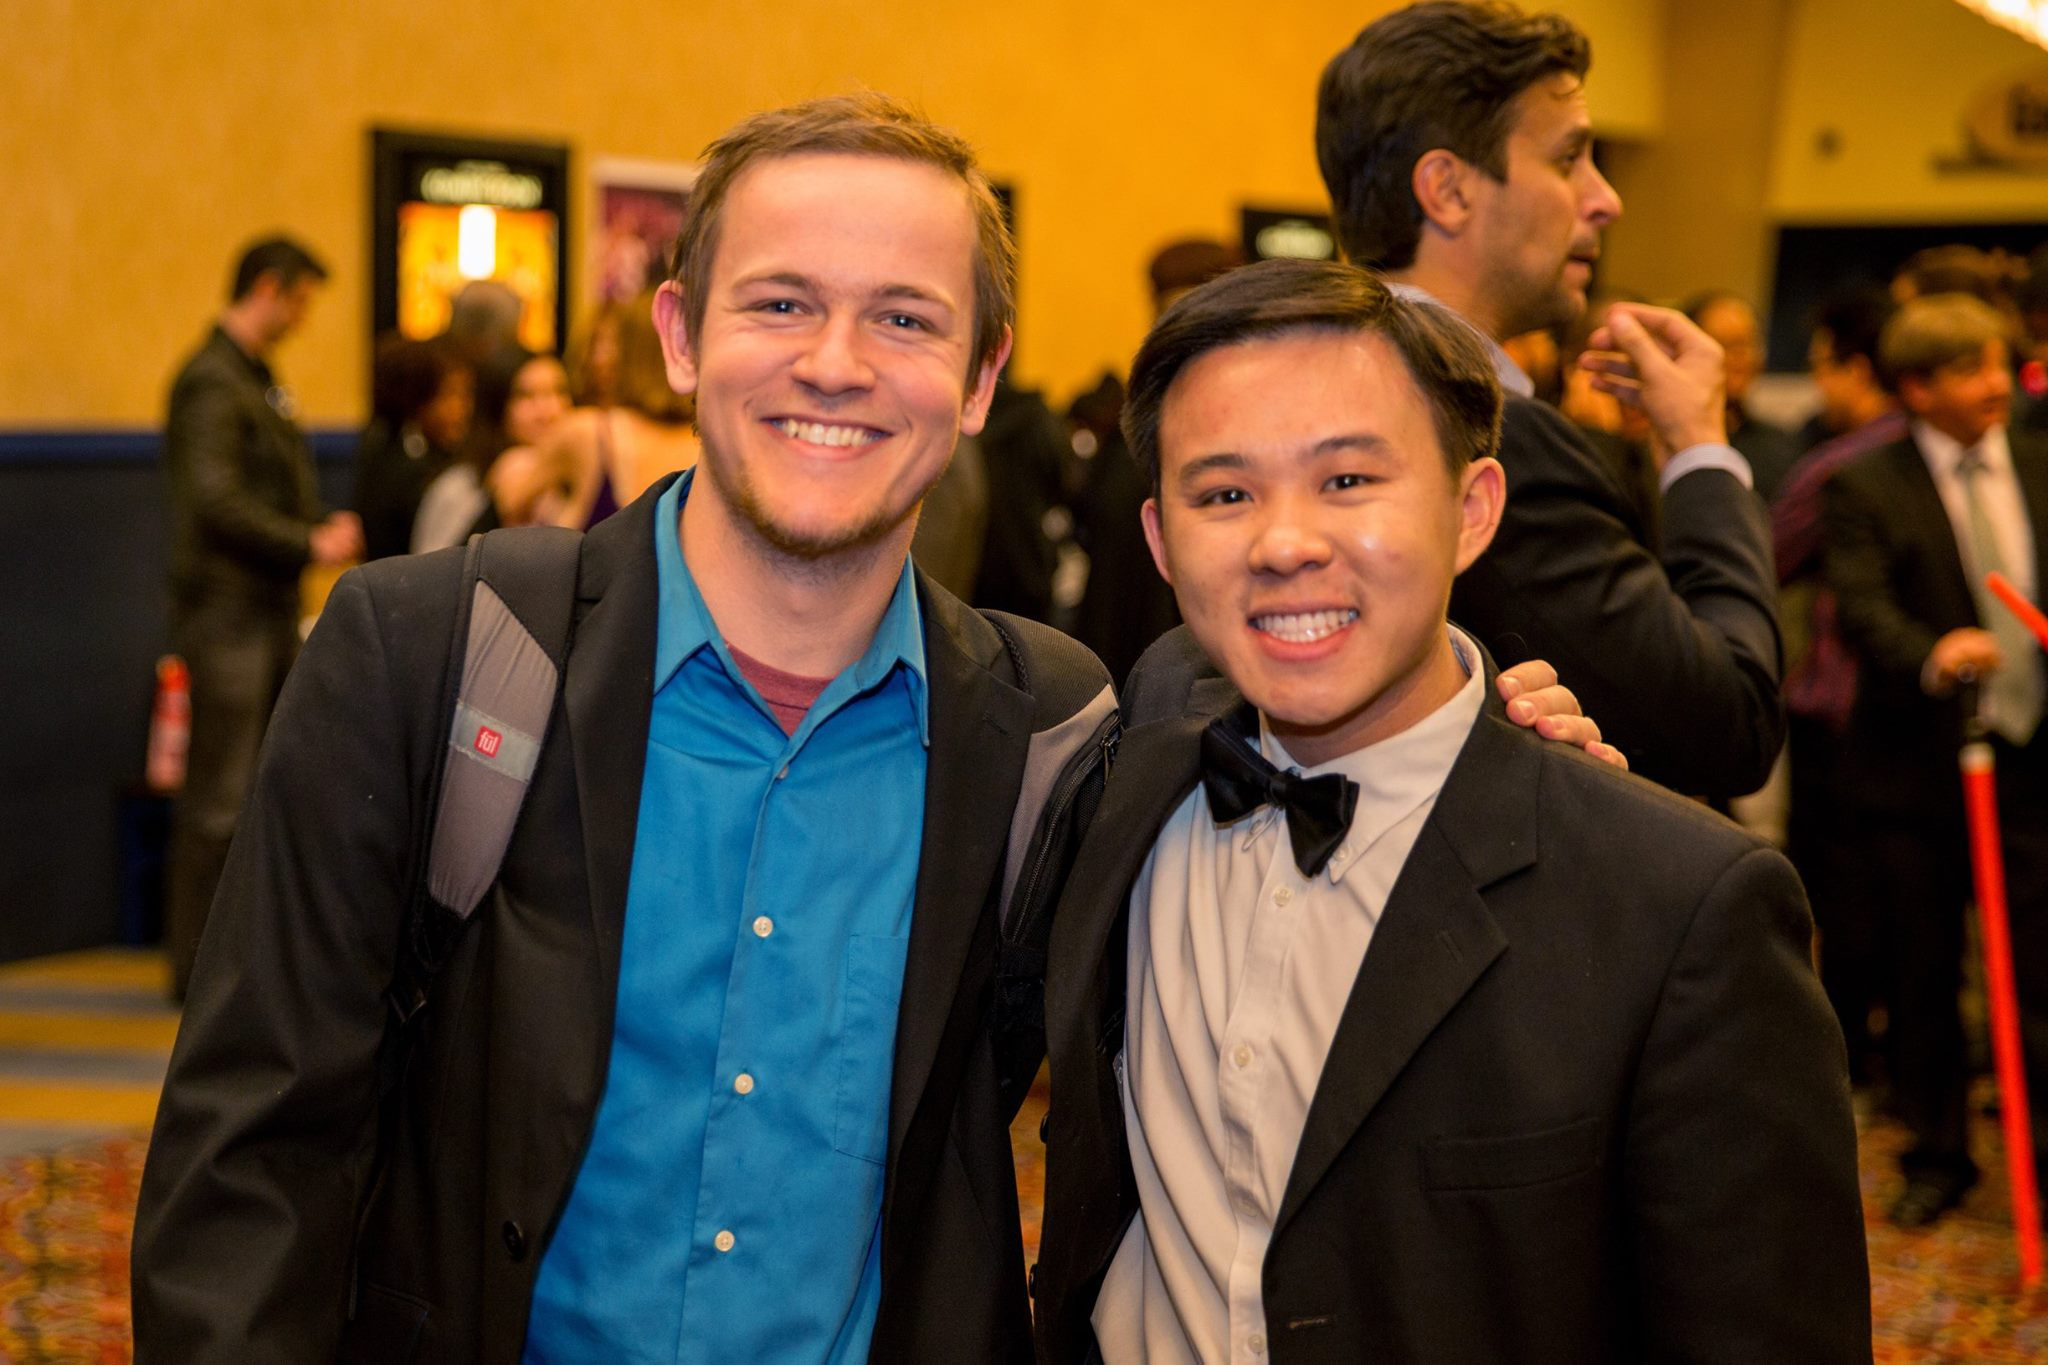 Daniel Ellis and Joshua Hoh at an event for Star Trek Wars (2015)